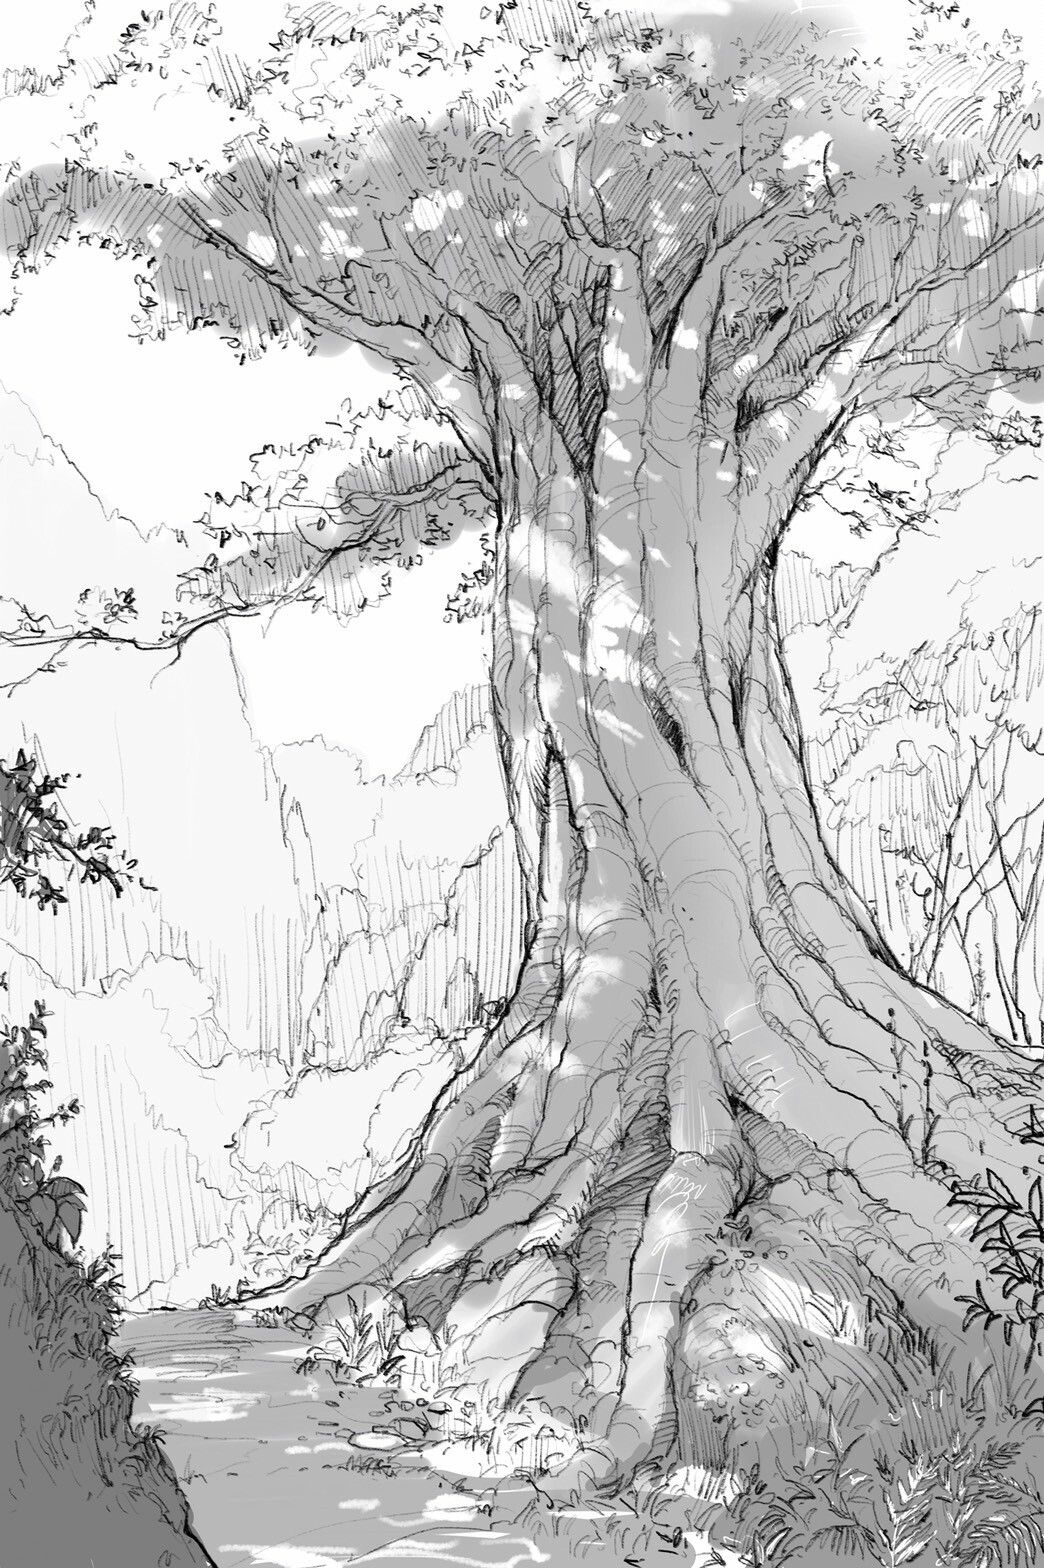 Tree sketches drawings of trees realistic drawings drawing sketches sketching environment